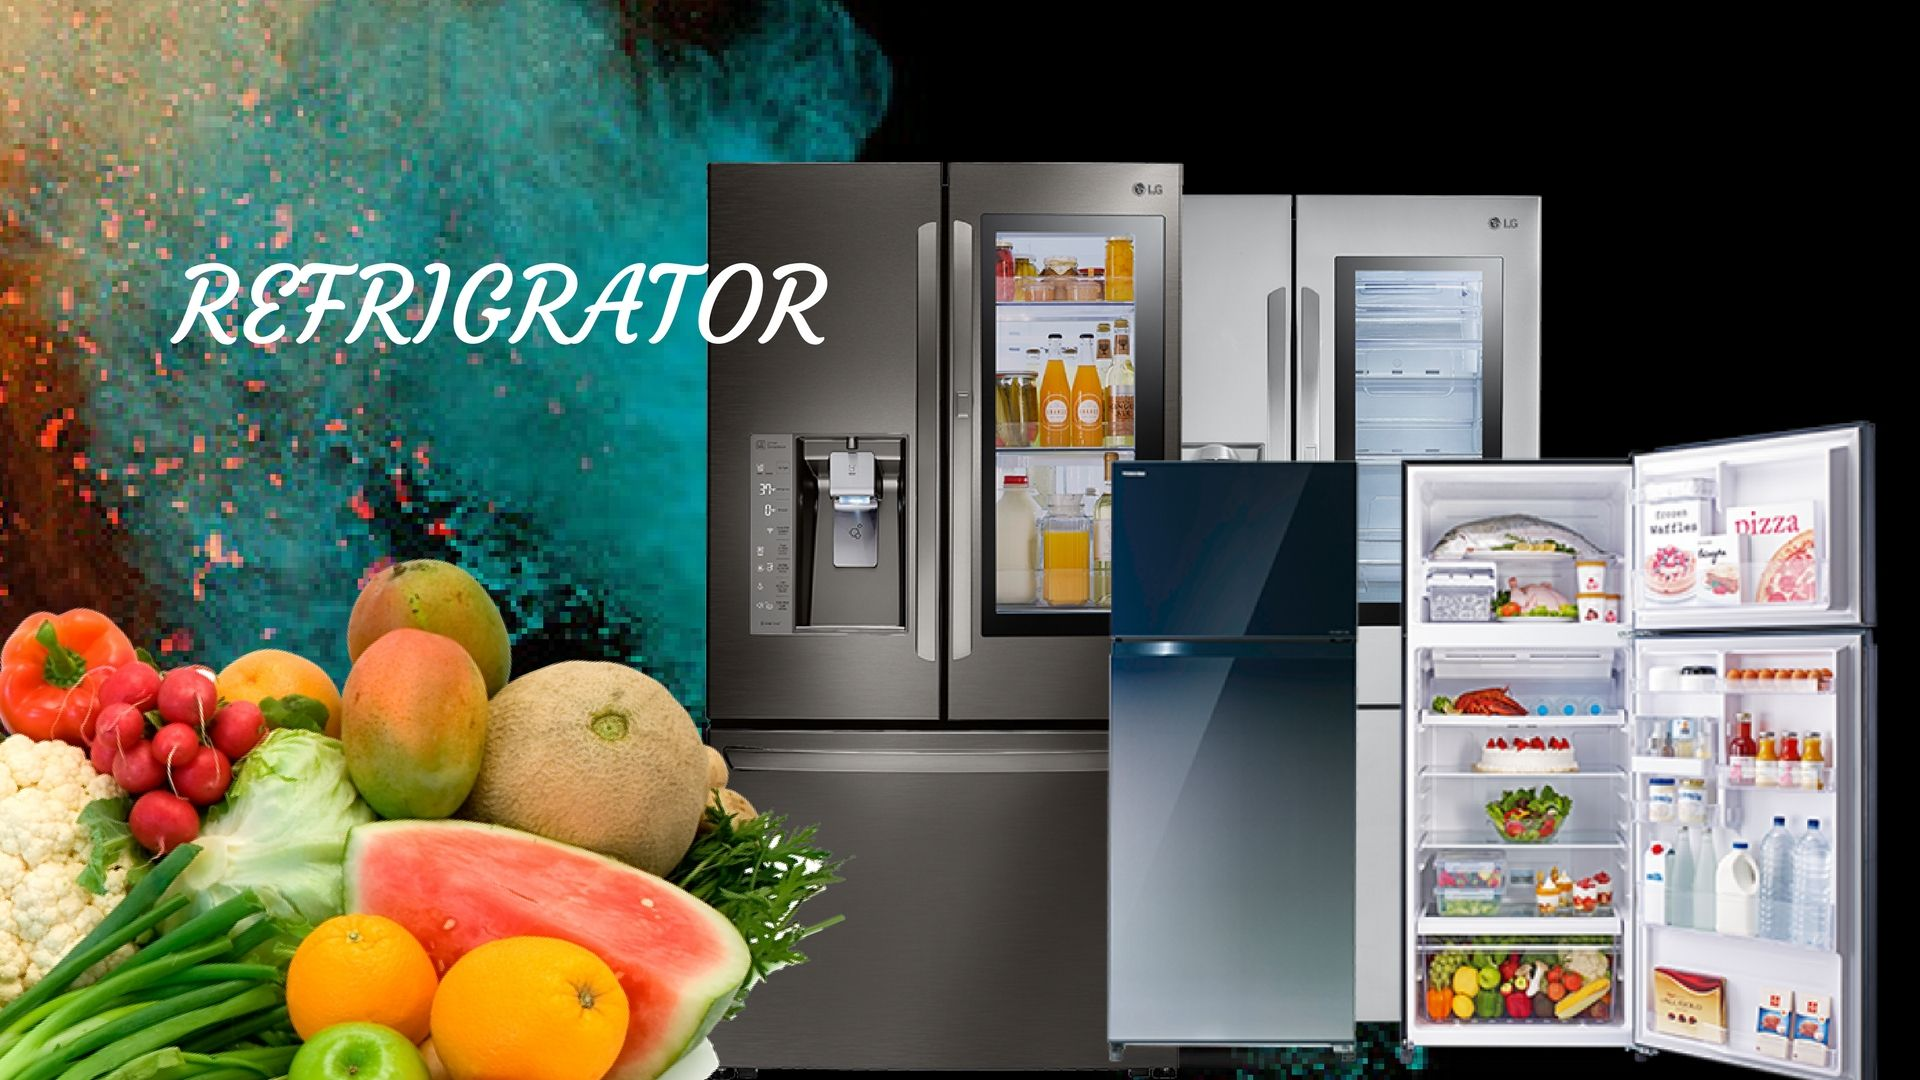 Refrigerator Price List In India Accessing The Comparison Pricing To Make The Best Choice Refrigerator Prices Refrigerator Home Appliances